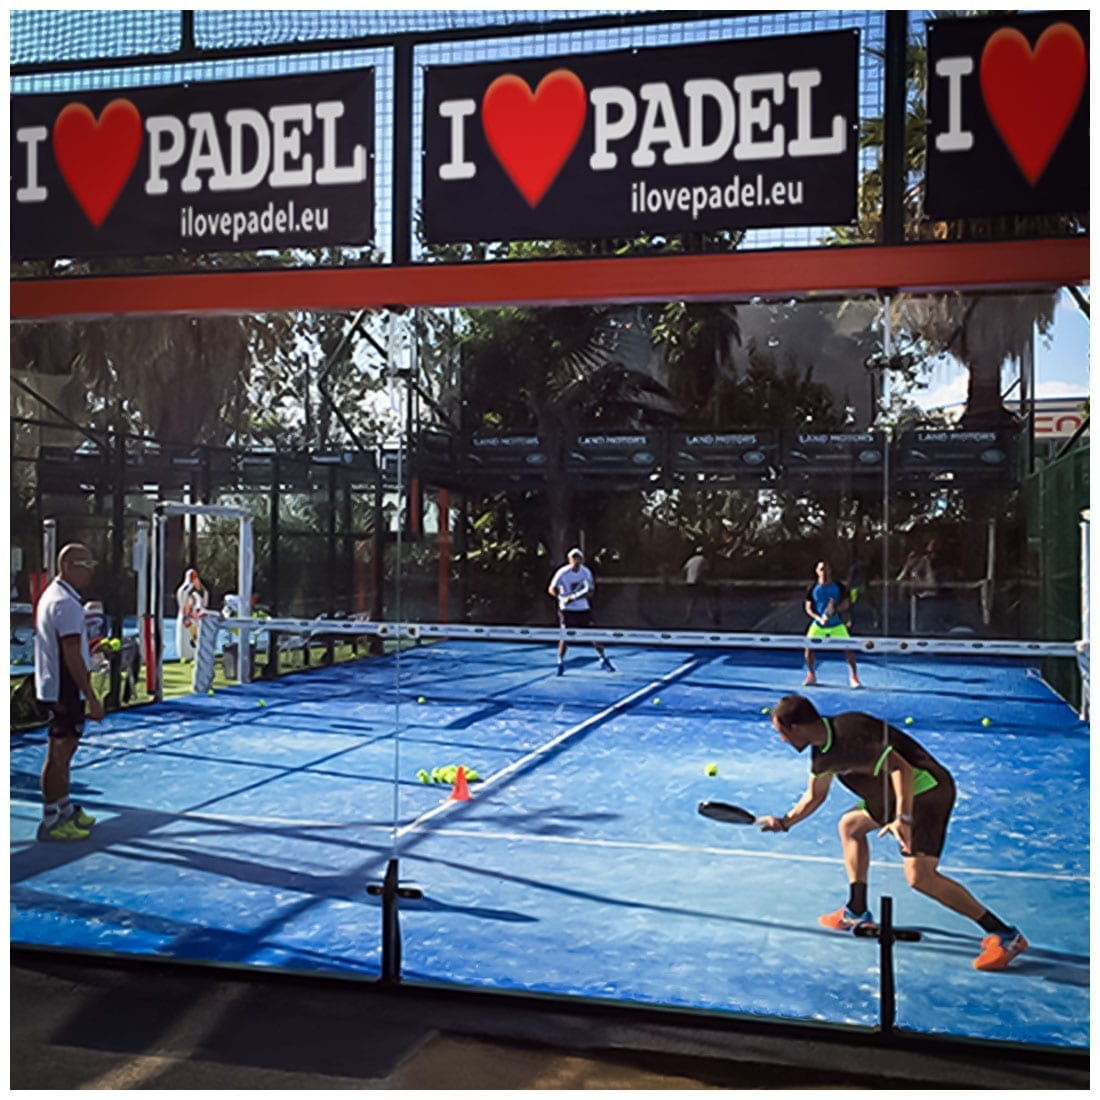 What is Padel/Paddle? How it's played? I Love Padel, explaining Padel